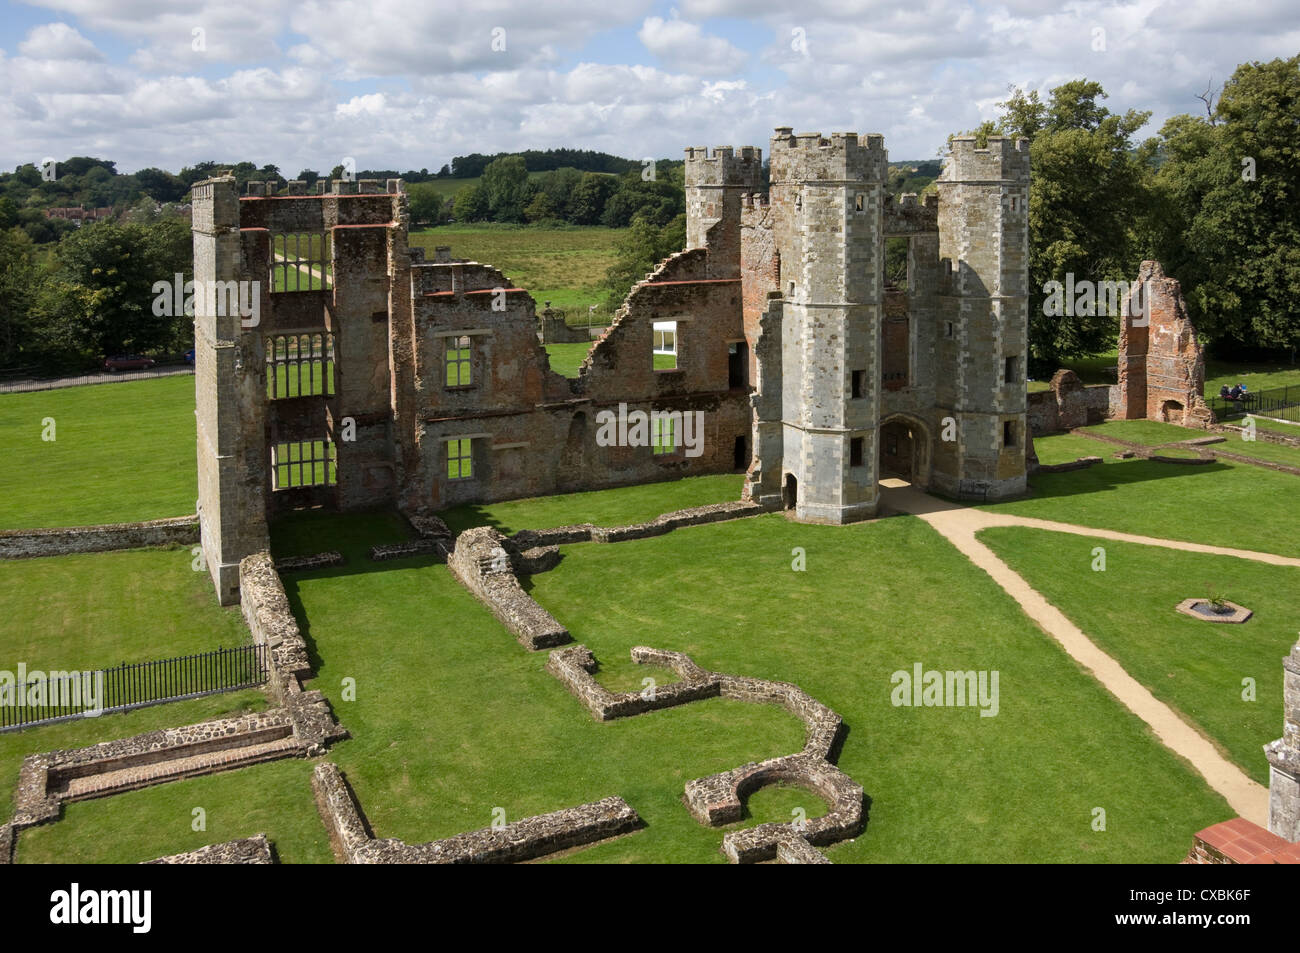 The inner courtyard and gate tower of the 16th century Tudor Cowdray Castle, Midhurst, West Sussex, England, United - Stock Image